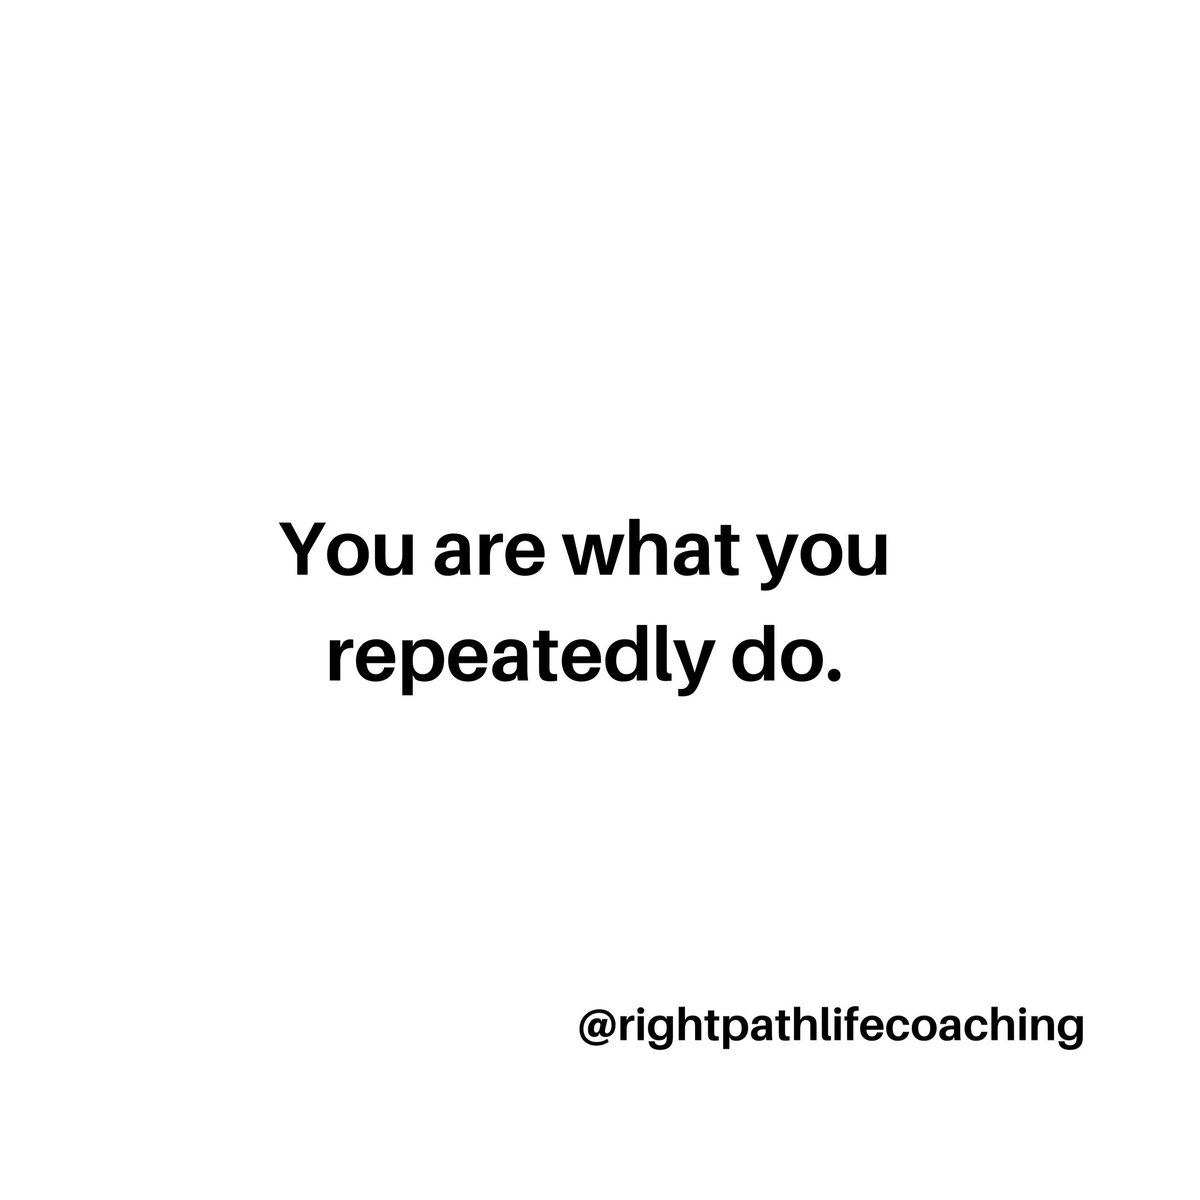 You are what you repeatedly do.  #REFLECTION pic.twitter.com/MpS9z2nARX